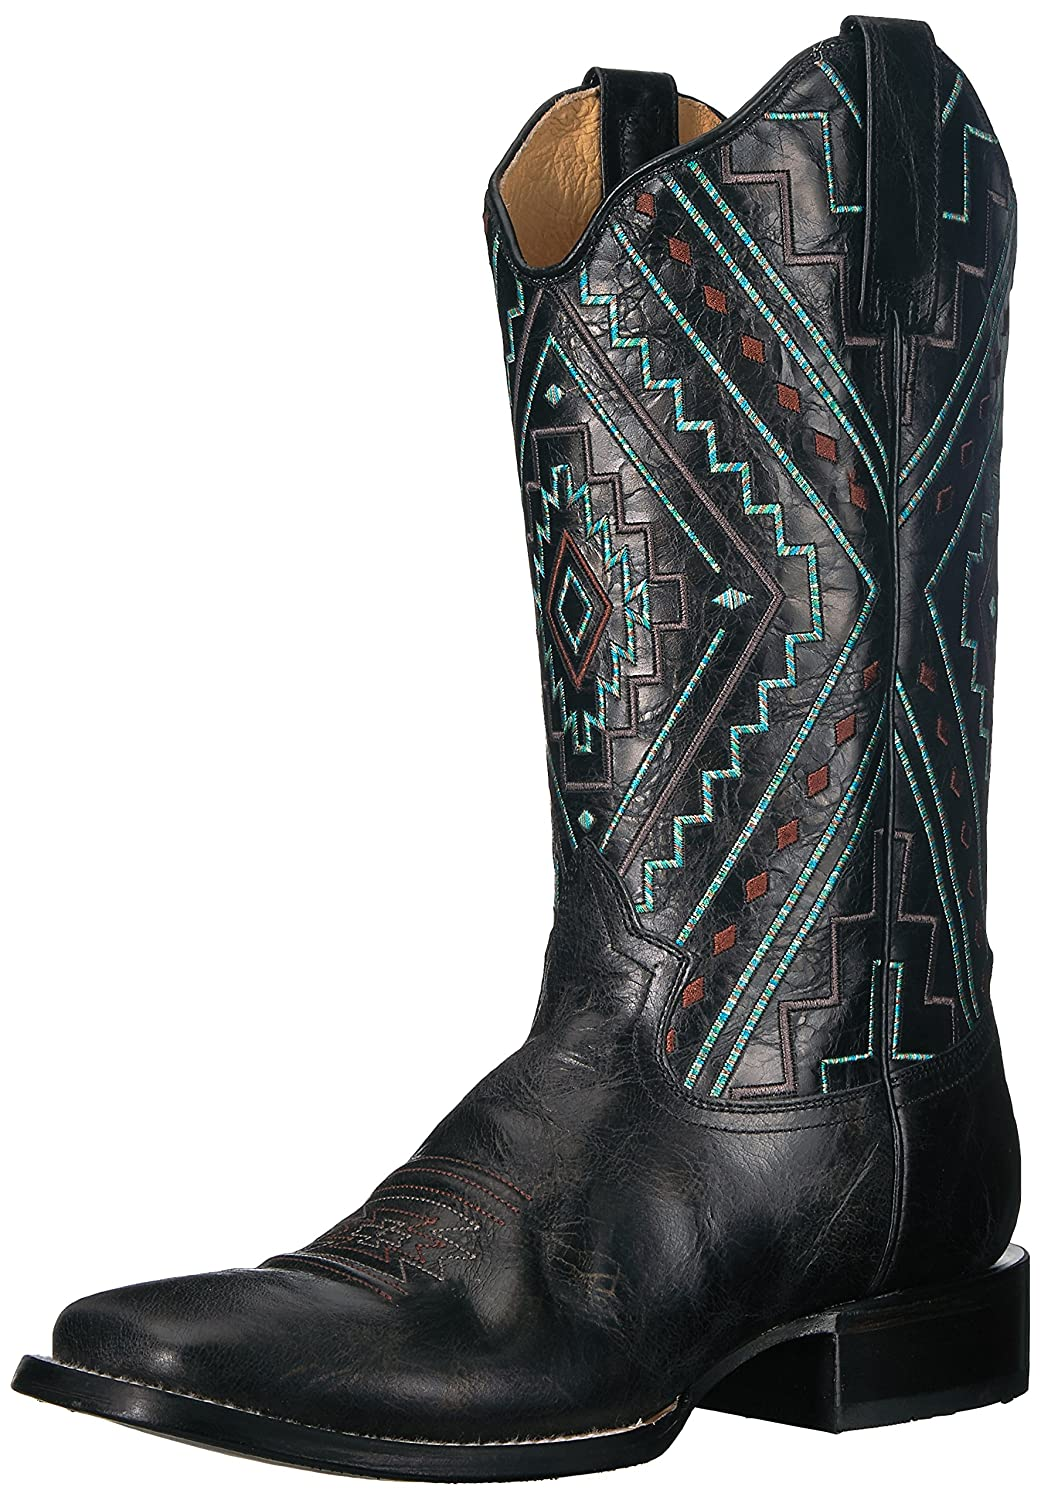 Roper Women's Native Western Boot B076TCBDVY 7.5 B(M) US|Black